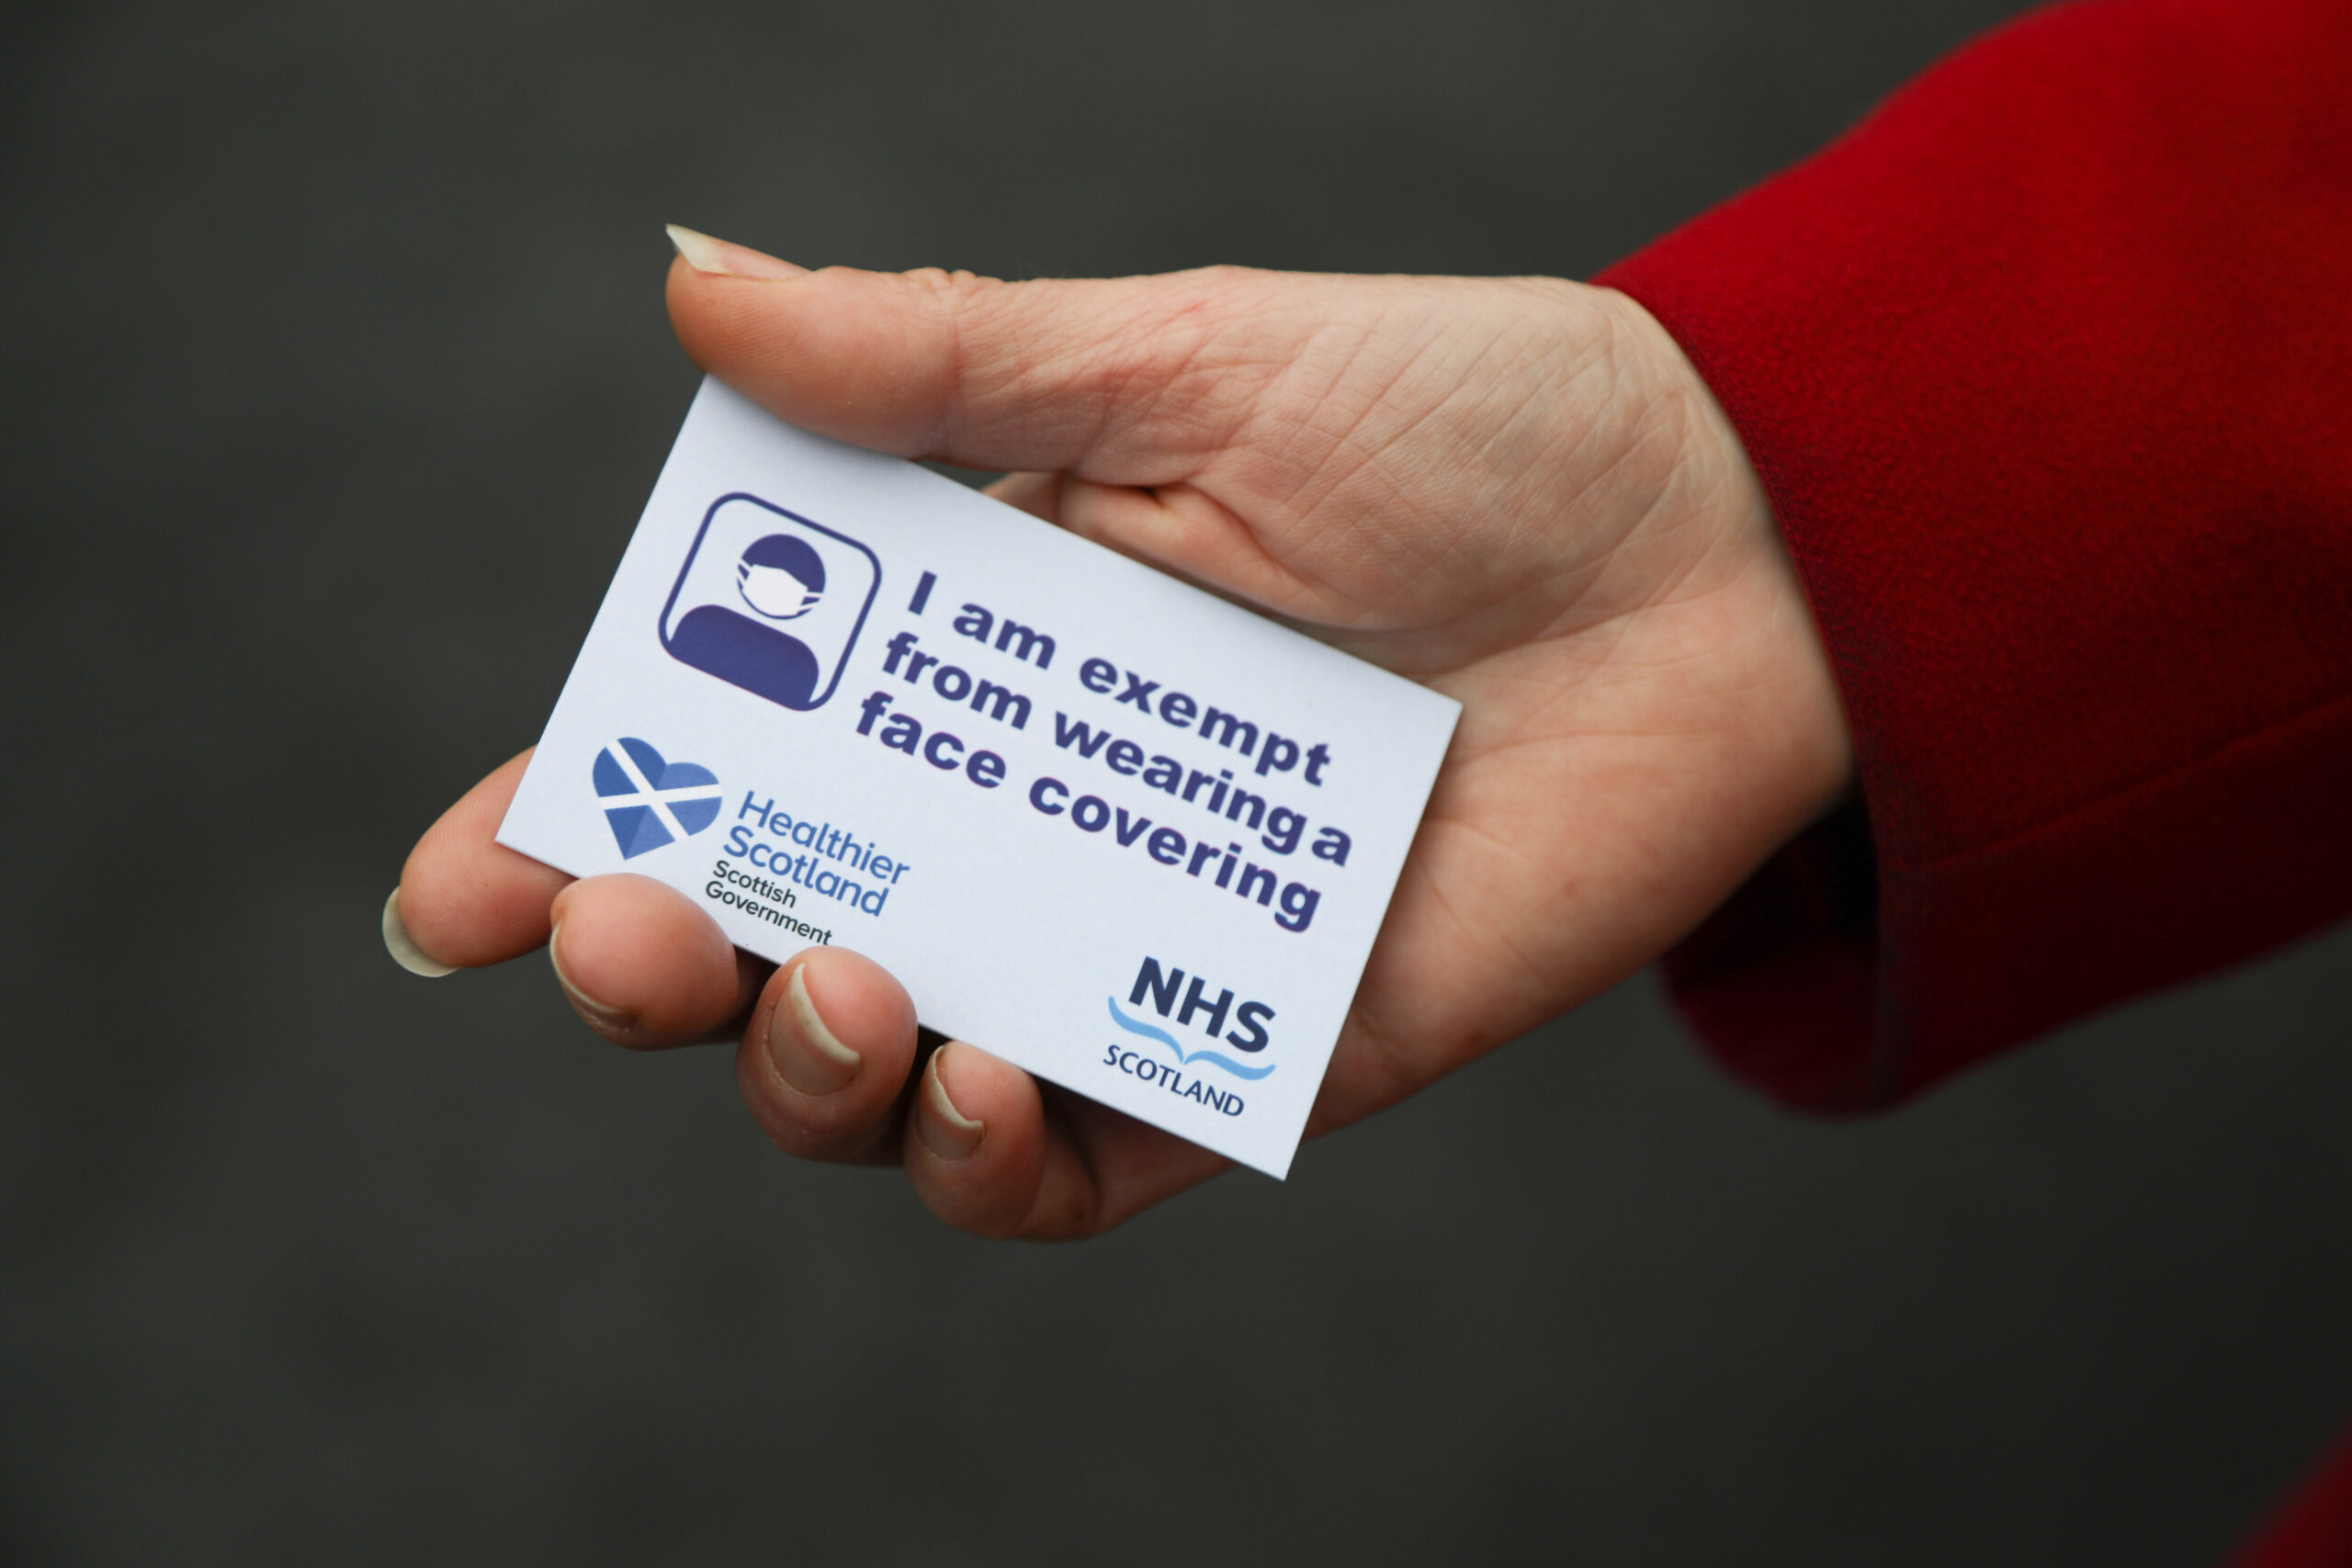 A person holding the Scottish Government face covering exemption card featuring healthier Scotland logo and NHS Scotland logo